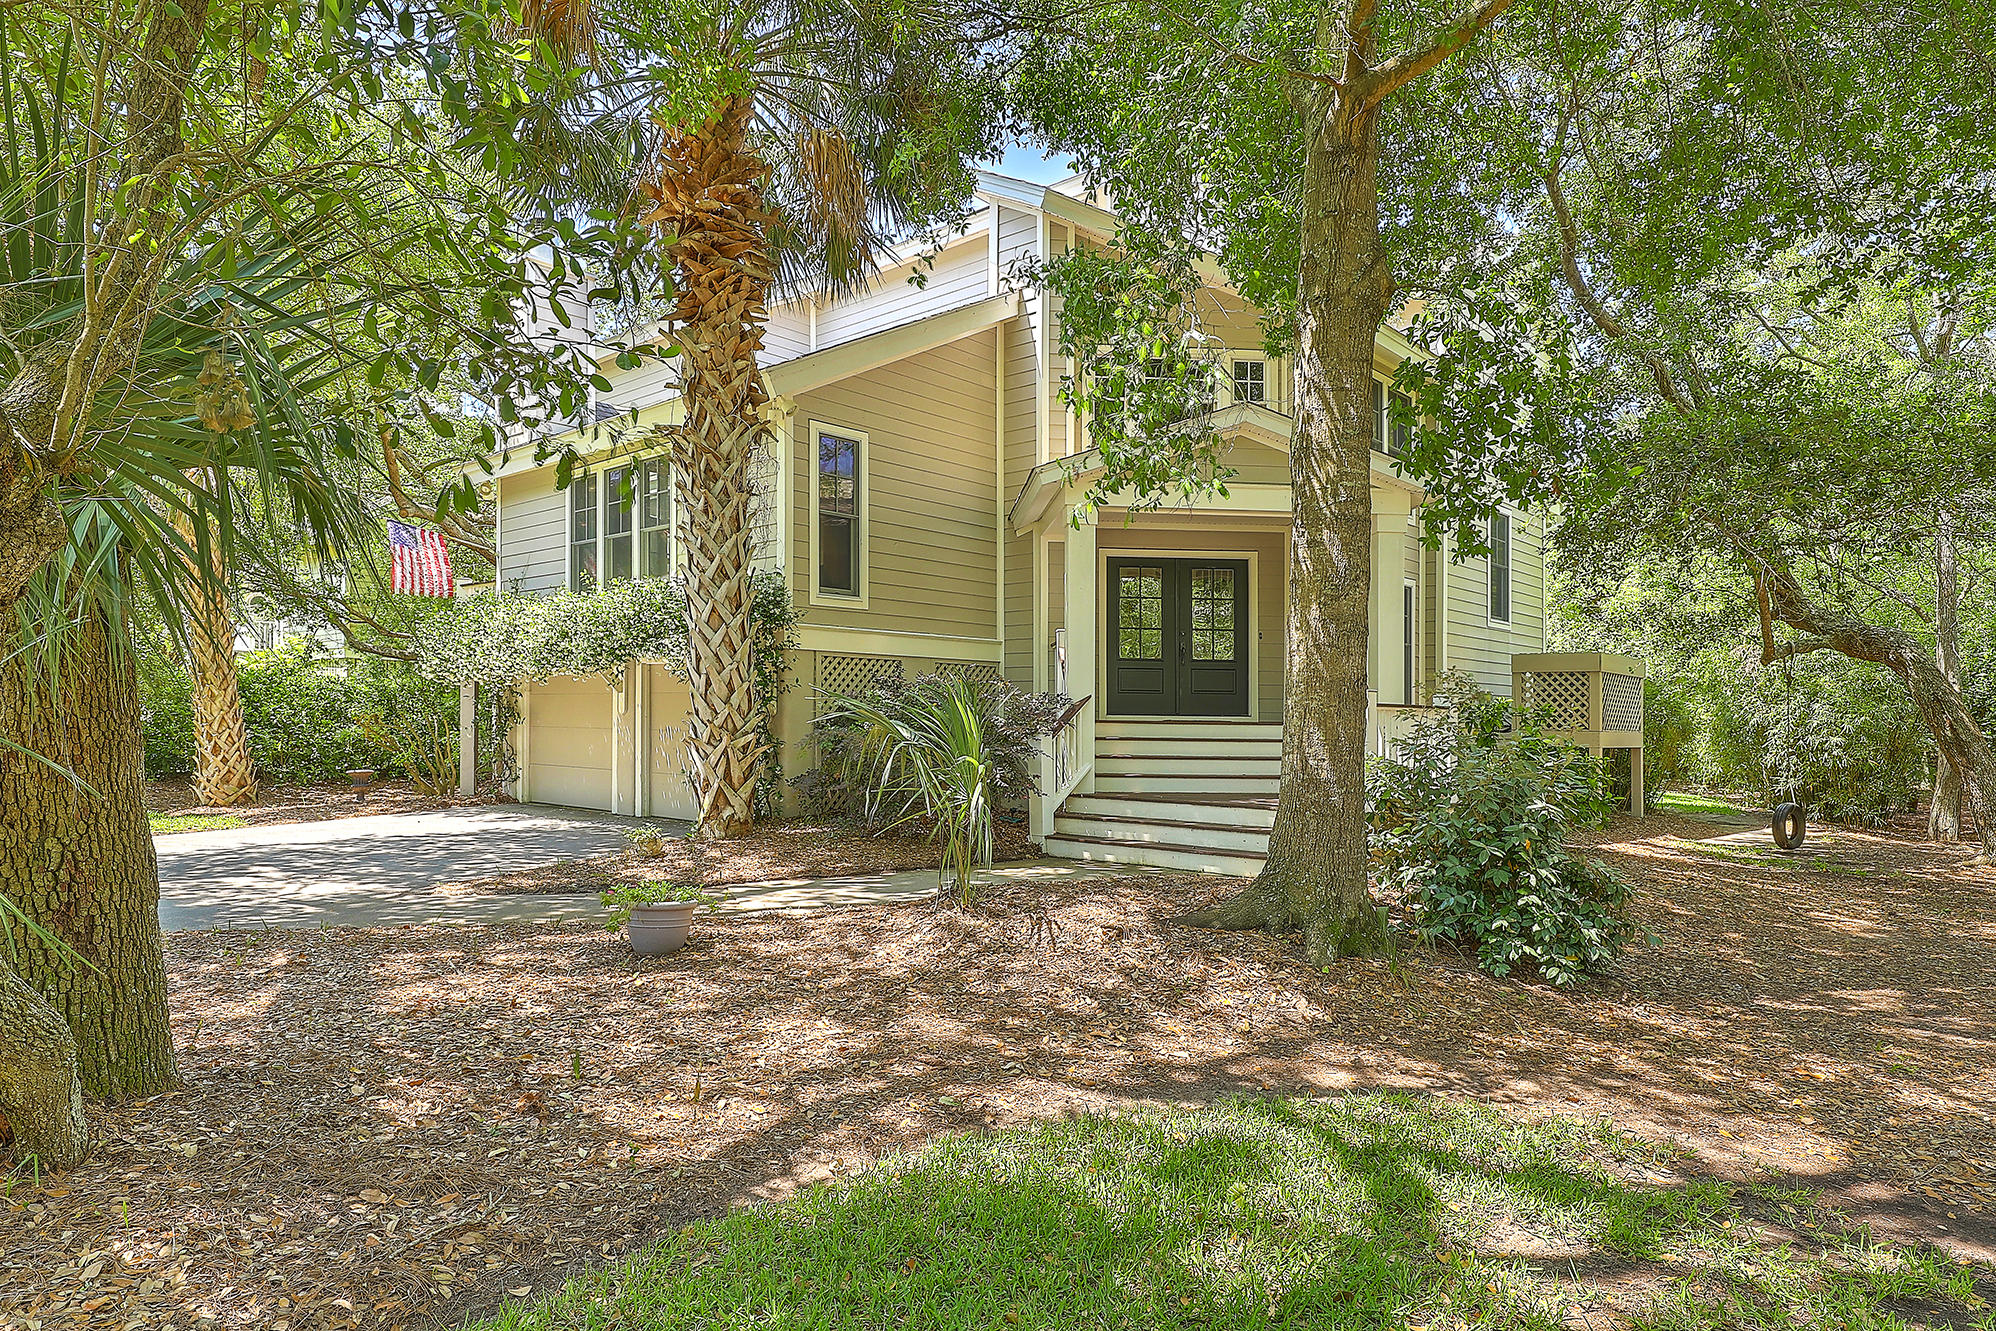 5 W Beachwood Isle Of Palms, SC 29451